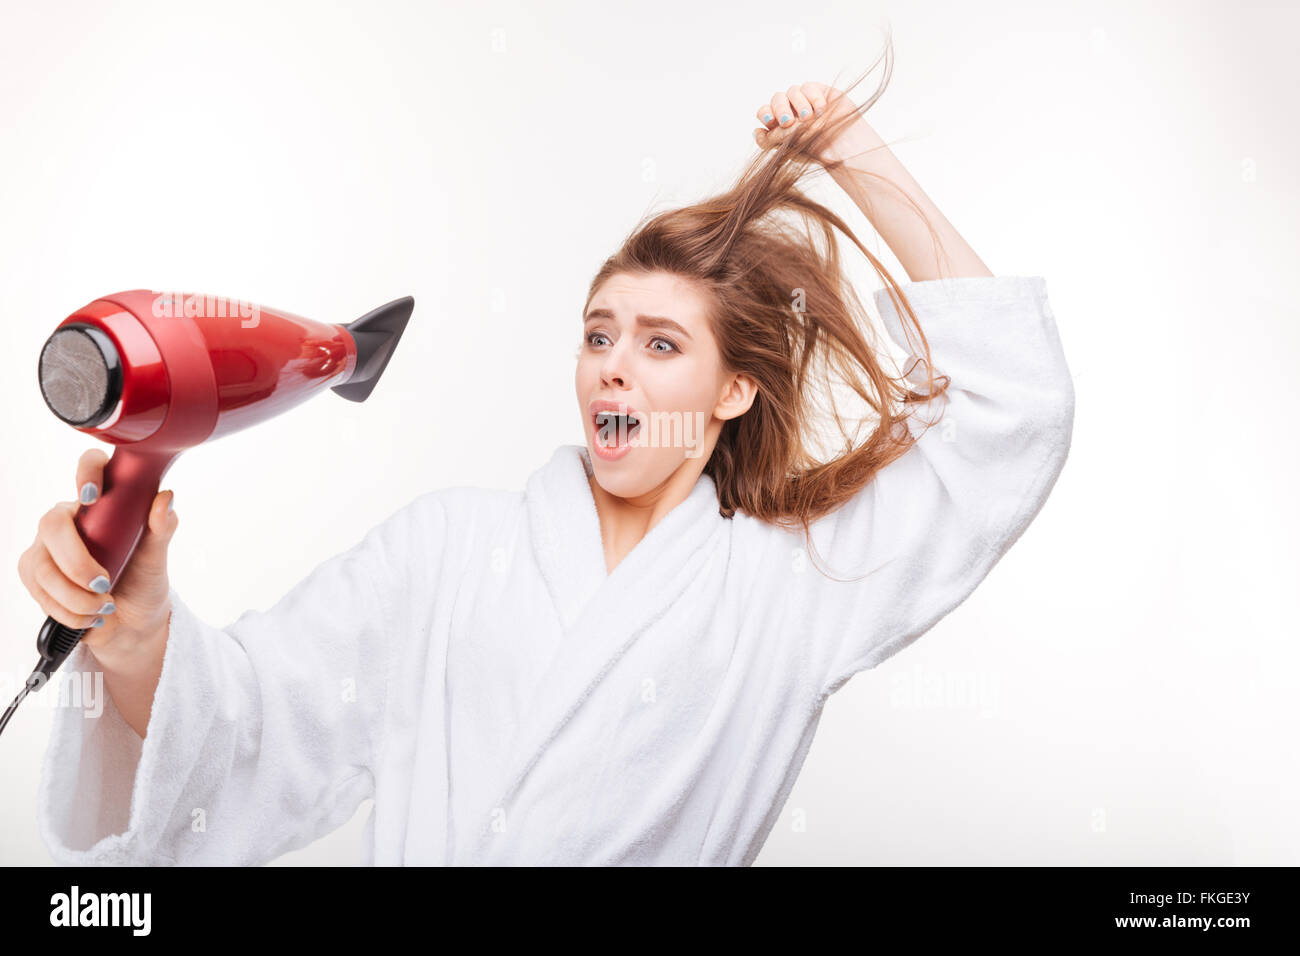 Funny frightened young woman in bathrobe  drying her hair and scared of dryer over white background - Stock Image